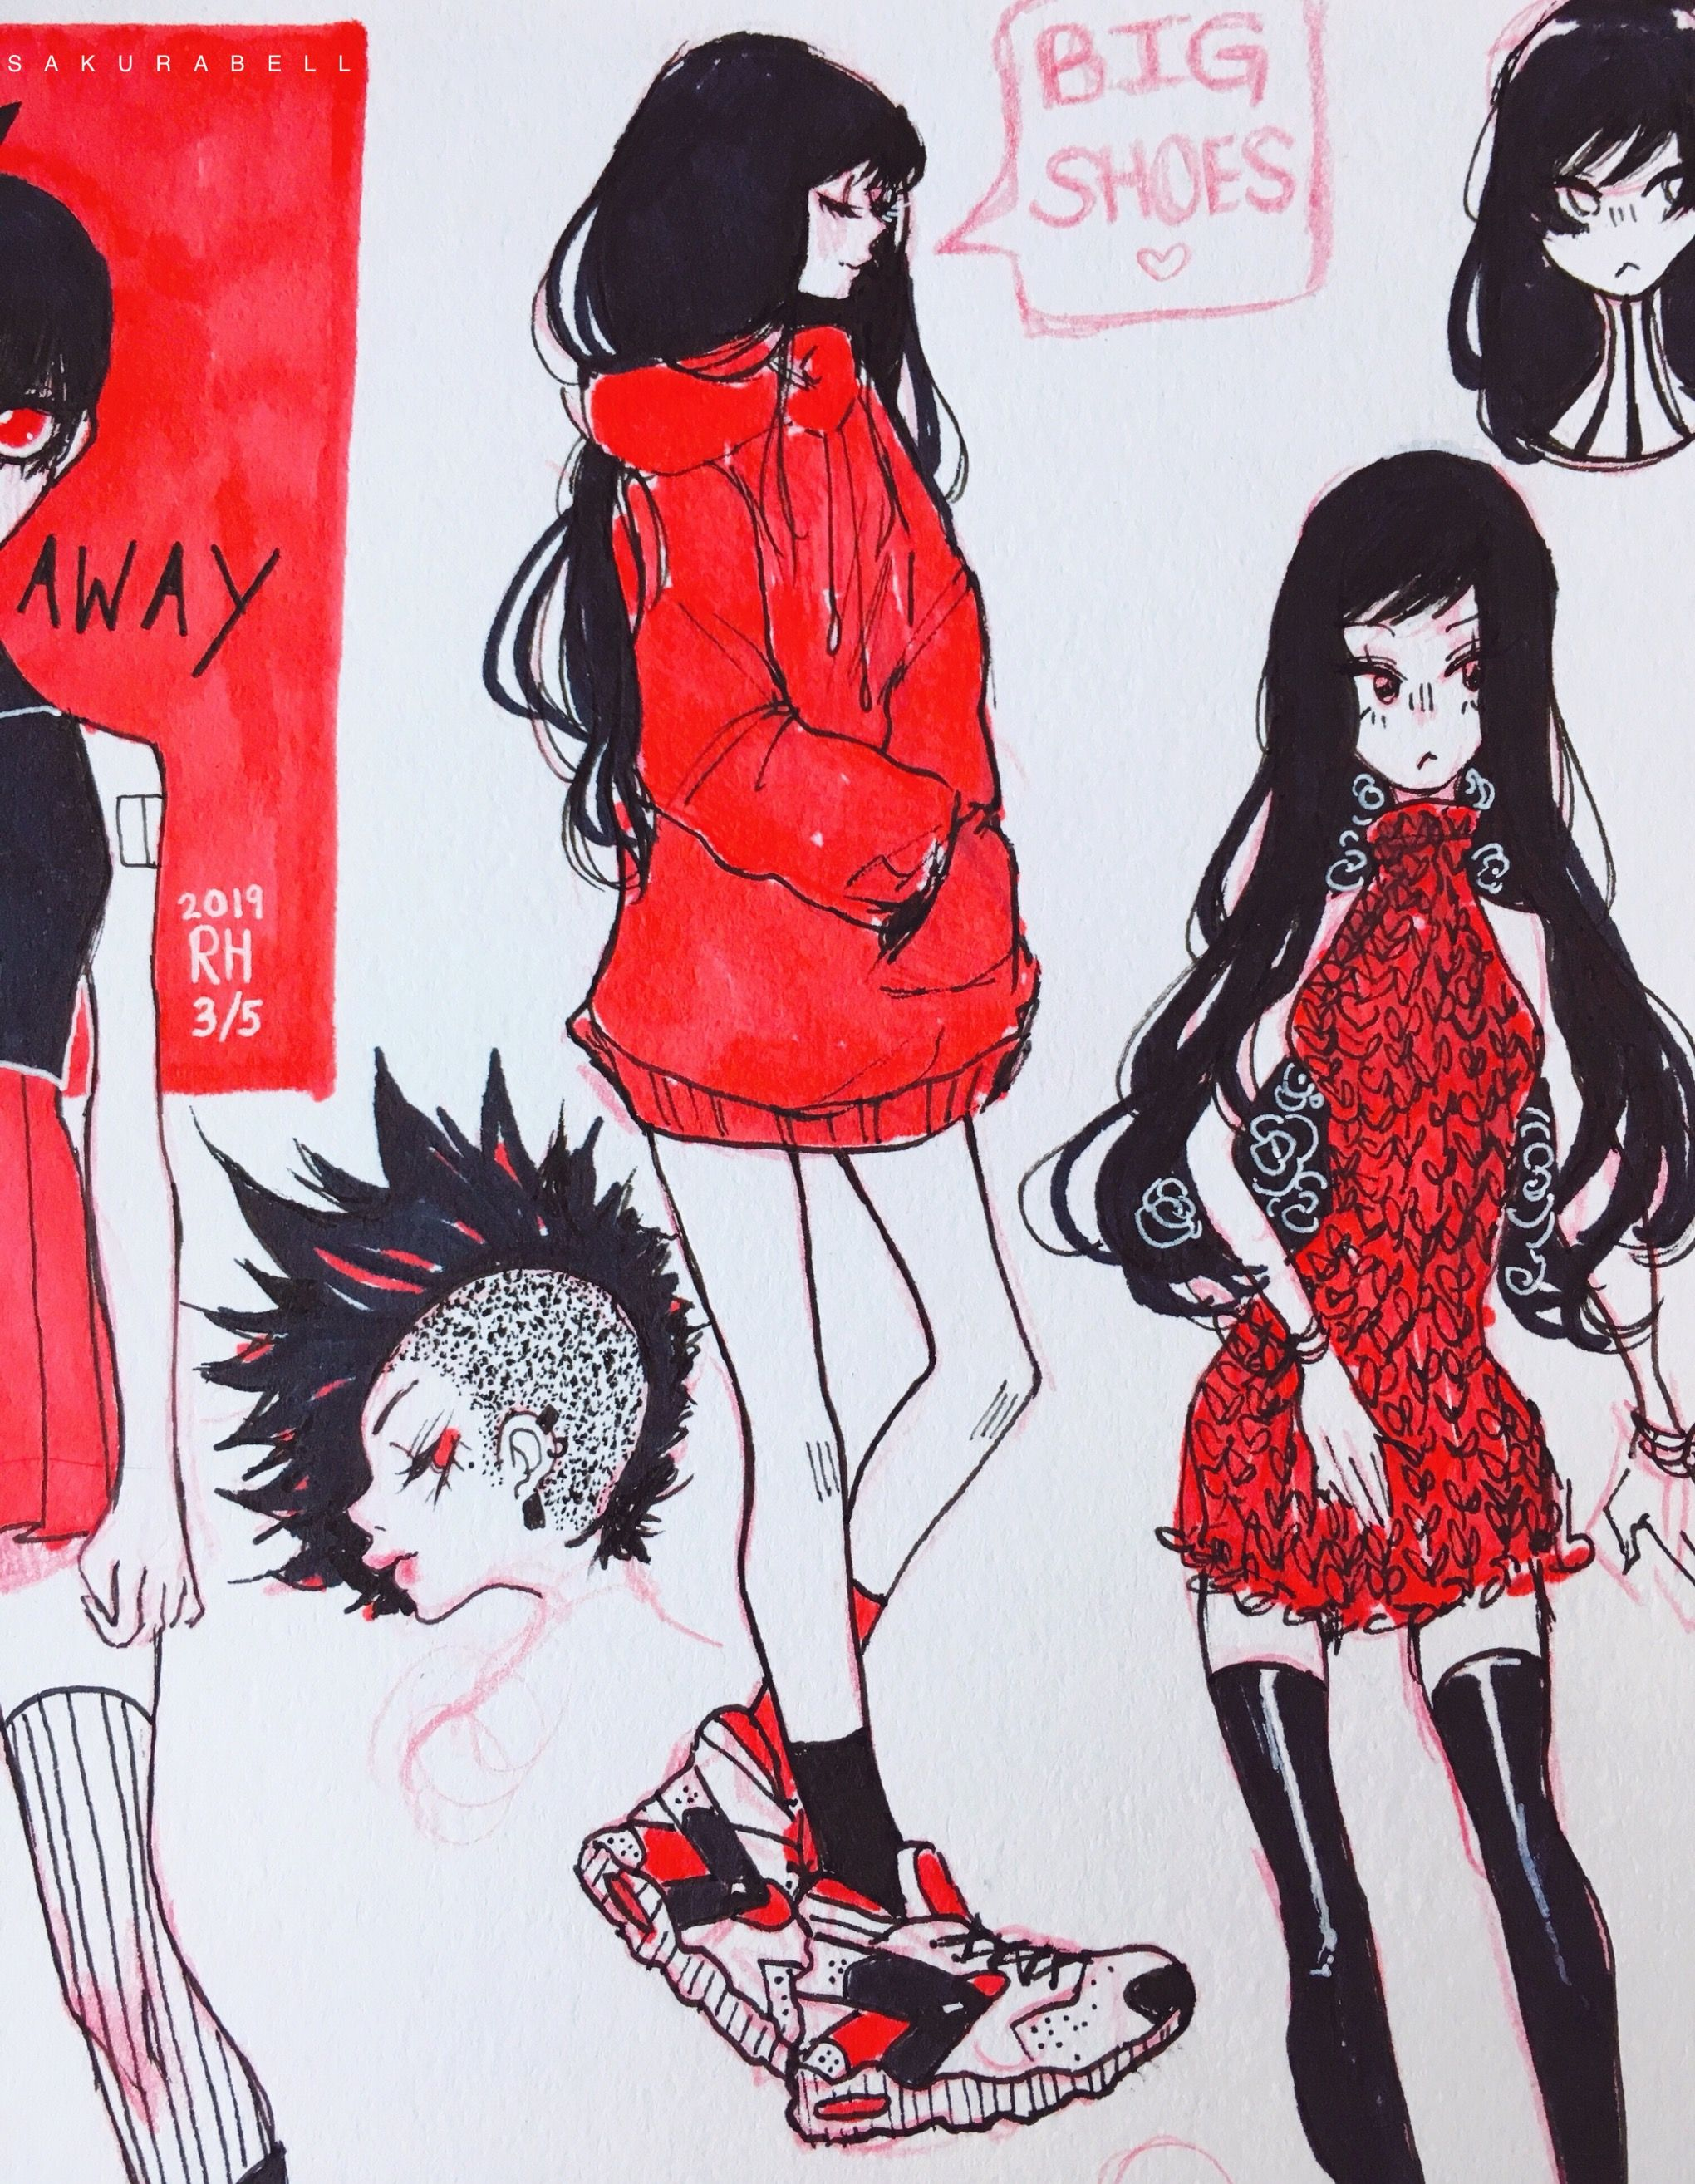 Pin By Wendy Powell On Refrince Art Cute Art Styles Cute Art Character Design Inspiration